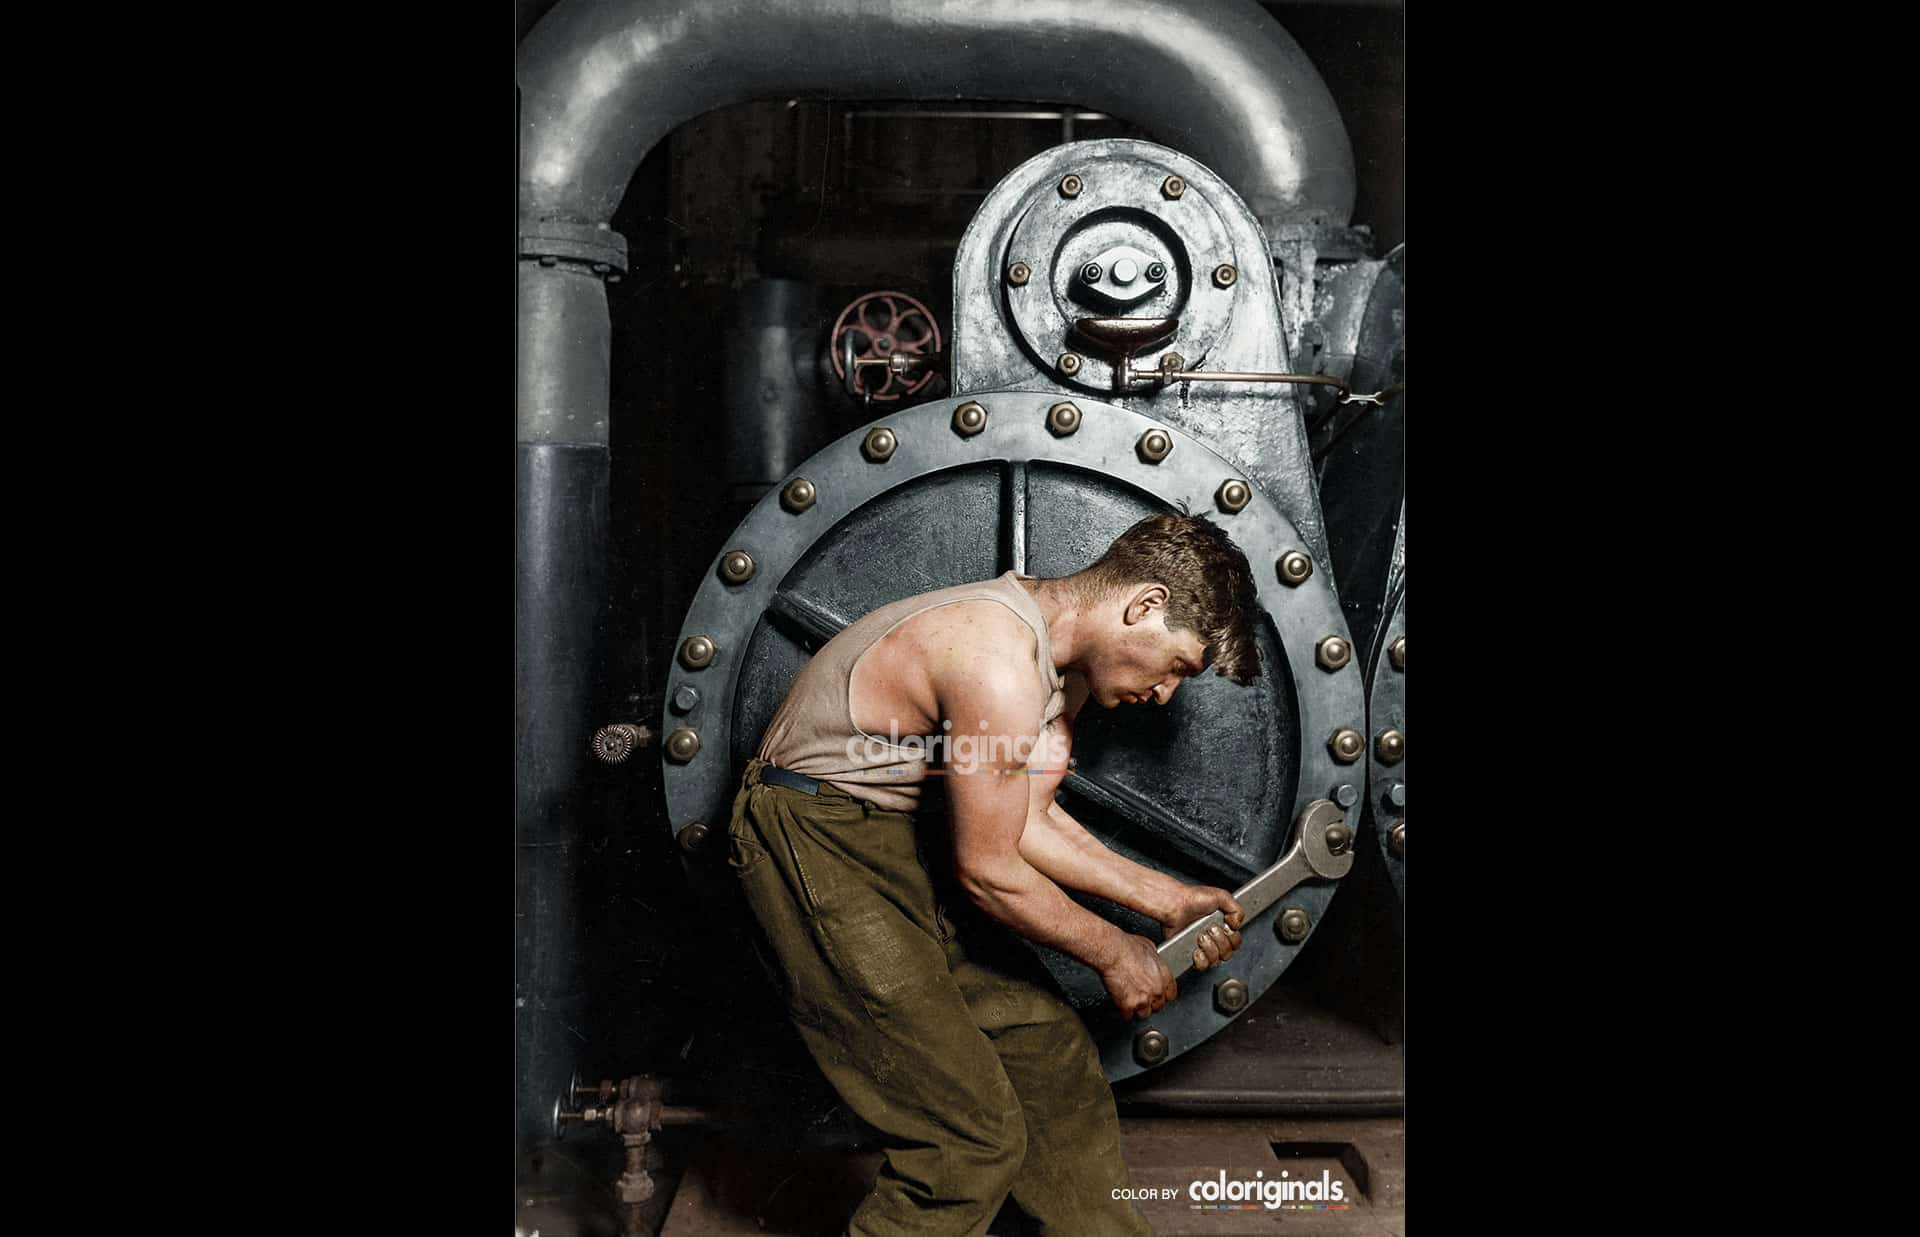 Steamfitter_1921_Coloriginals